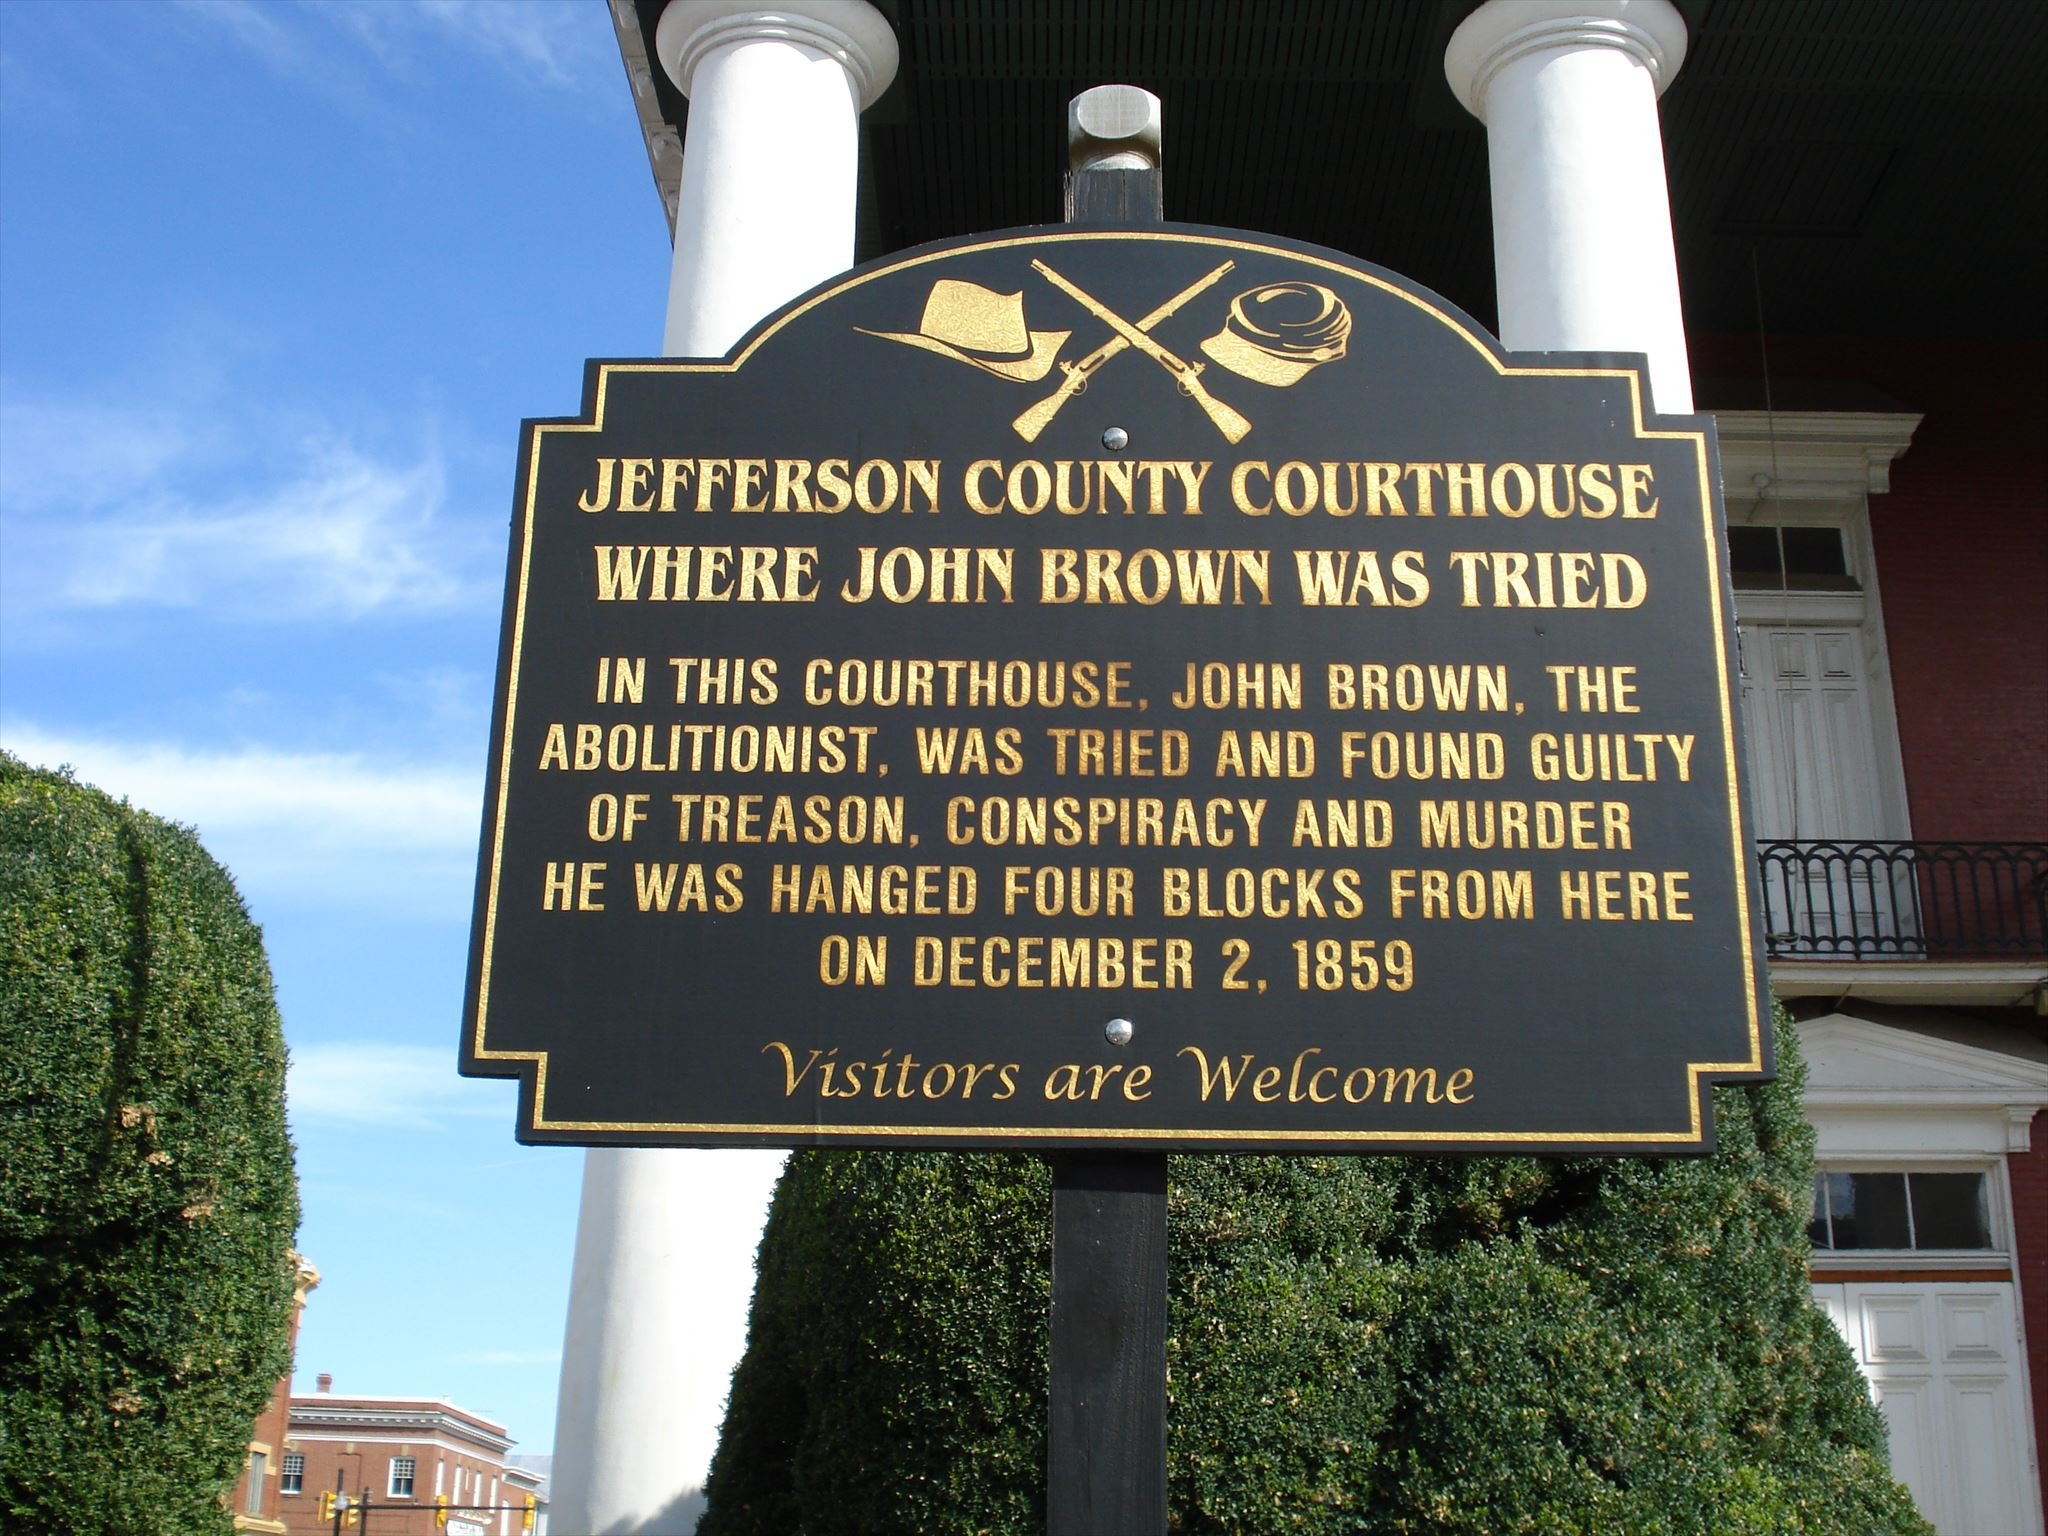 A marker stands in front of the courthouse today commemorating the trial of John Brown. Image obtained from waymarking.com.